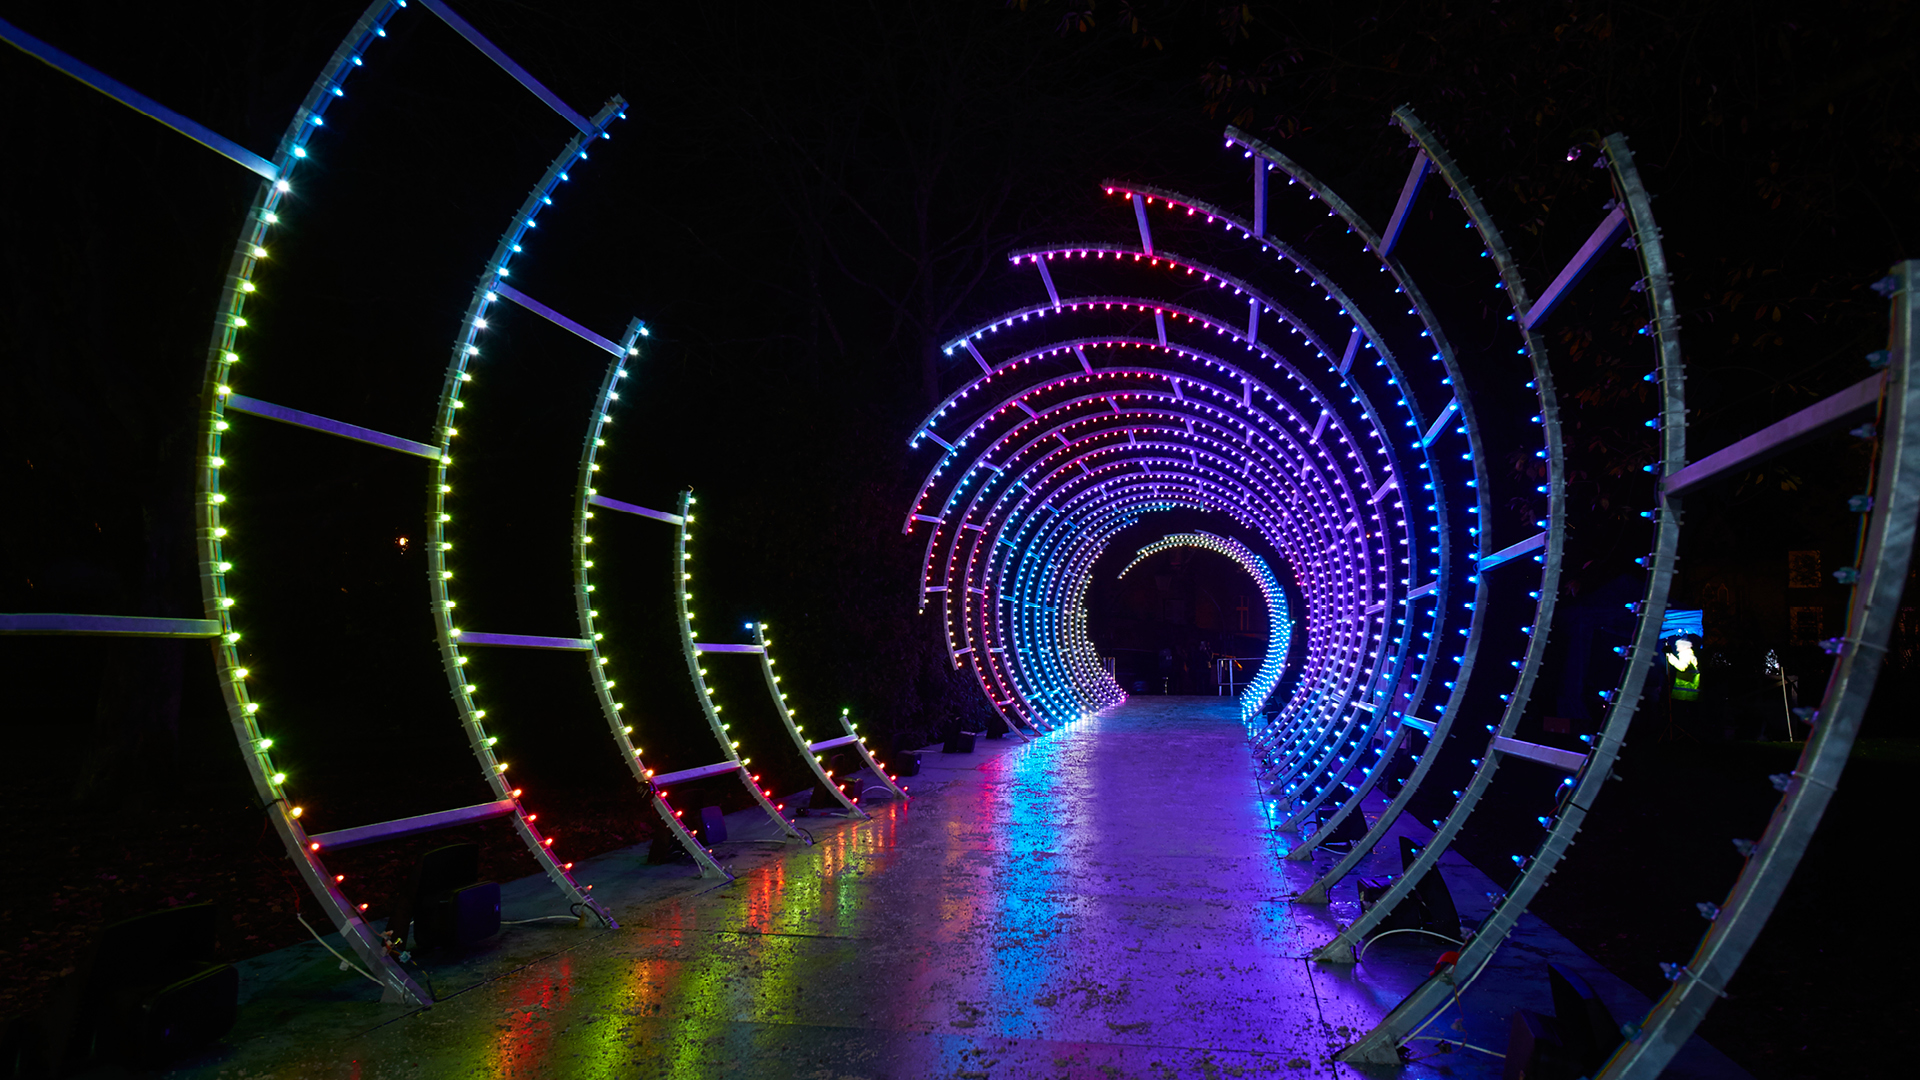 Light Tunnel, Dan Shorten. Guildhall Live Events. Supported by Silverwood Cars. Lumiere Durham 2019, produced by Artichoke | Lumiere Durham | Dan Shorten | STIRworld